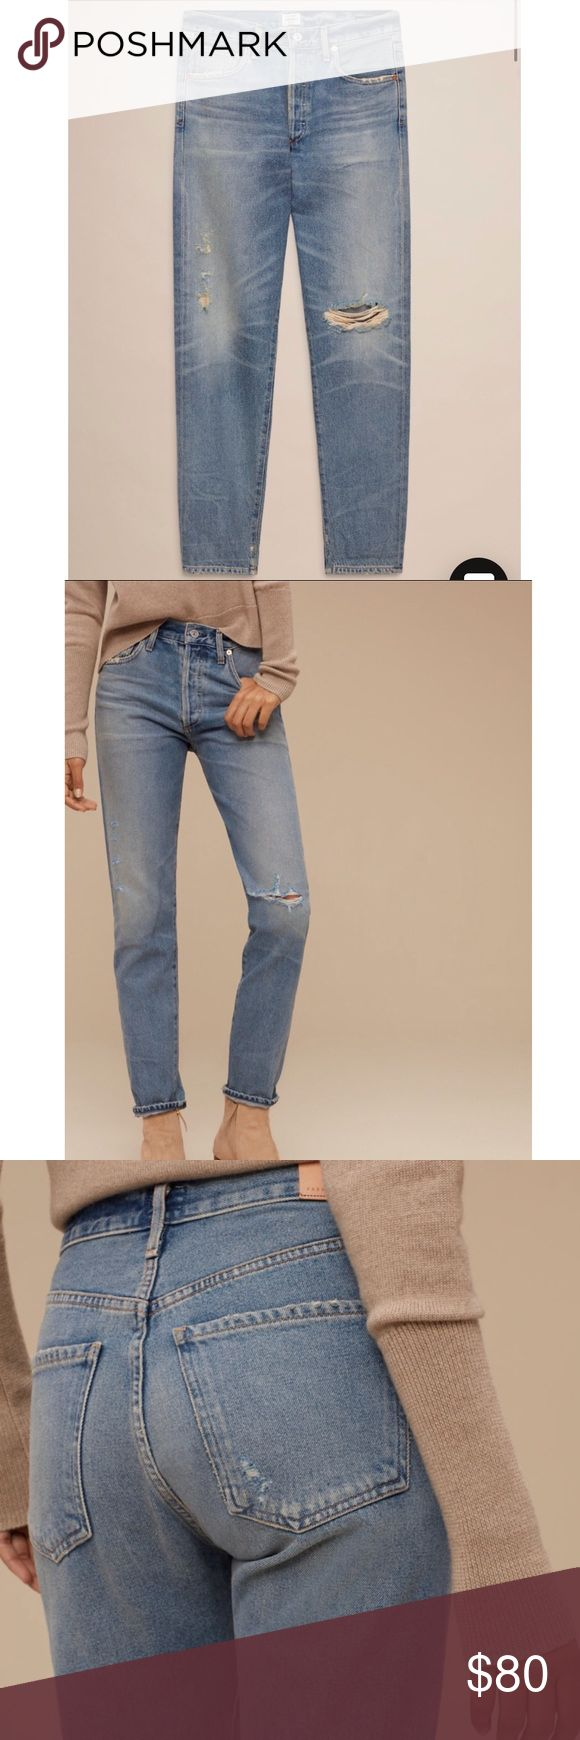 BNWT Citizens of Humanity Liya in Desperado Purchased final sale and unfortunately don't work for me. Citizens of Humanity Jeans Boyfriend